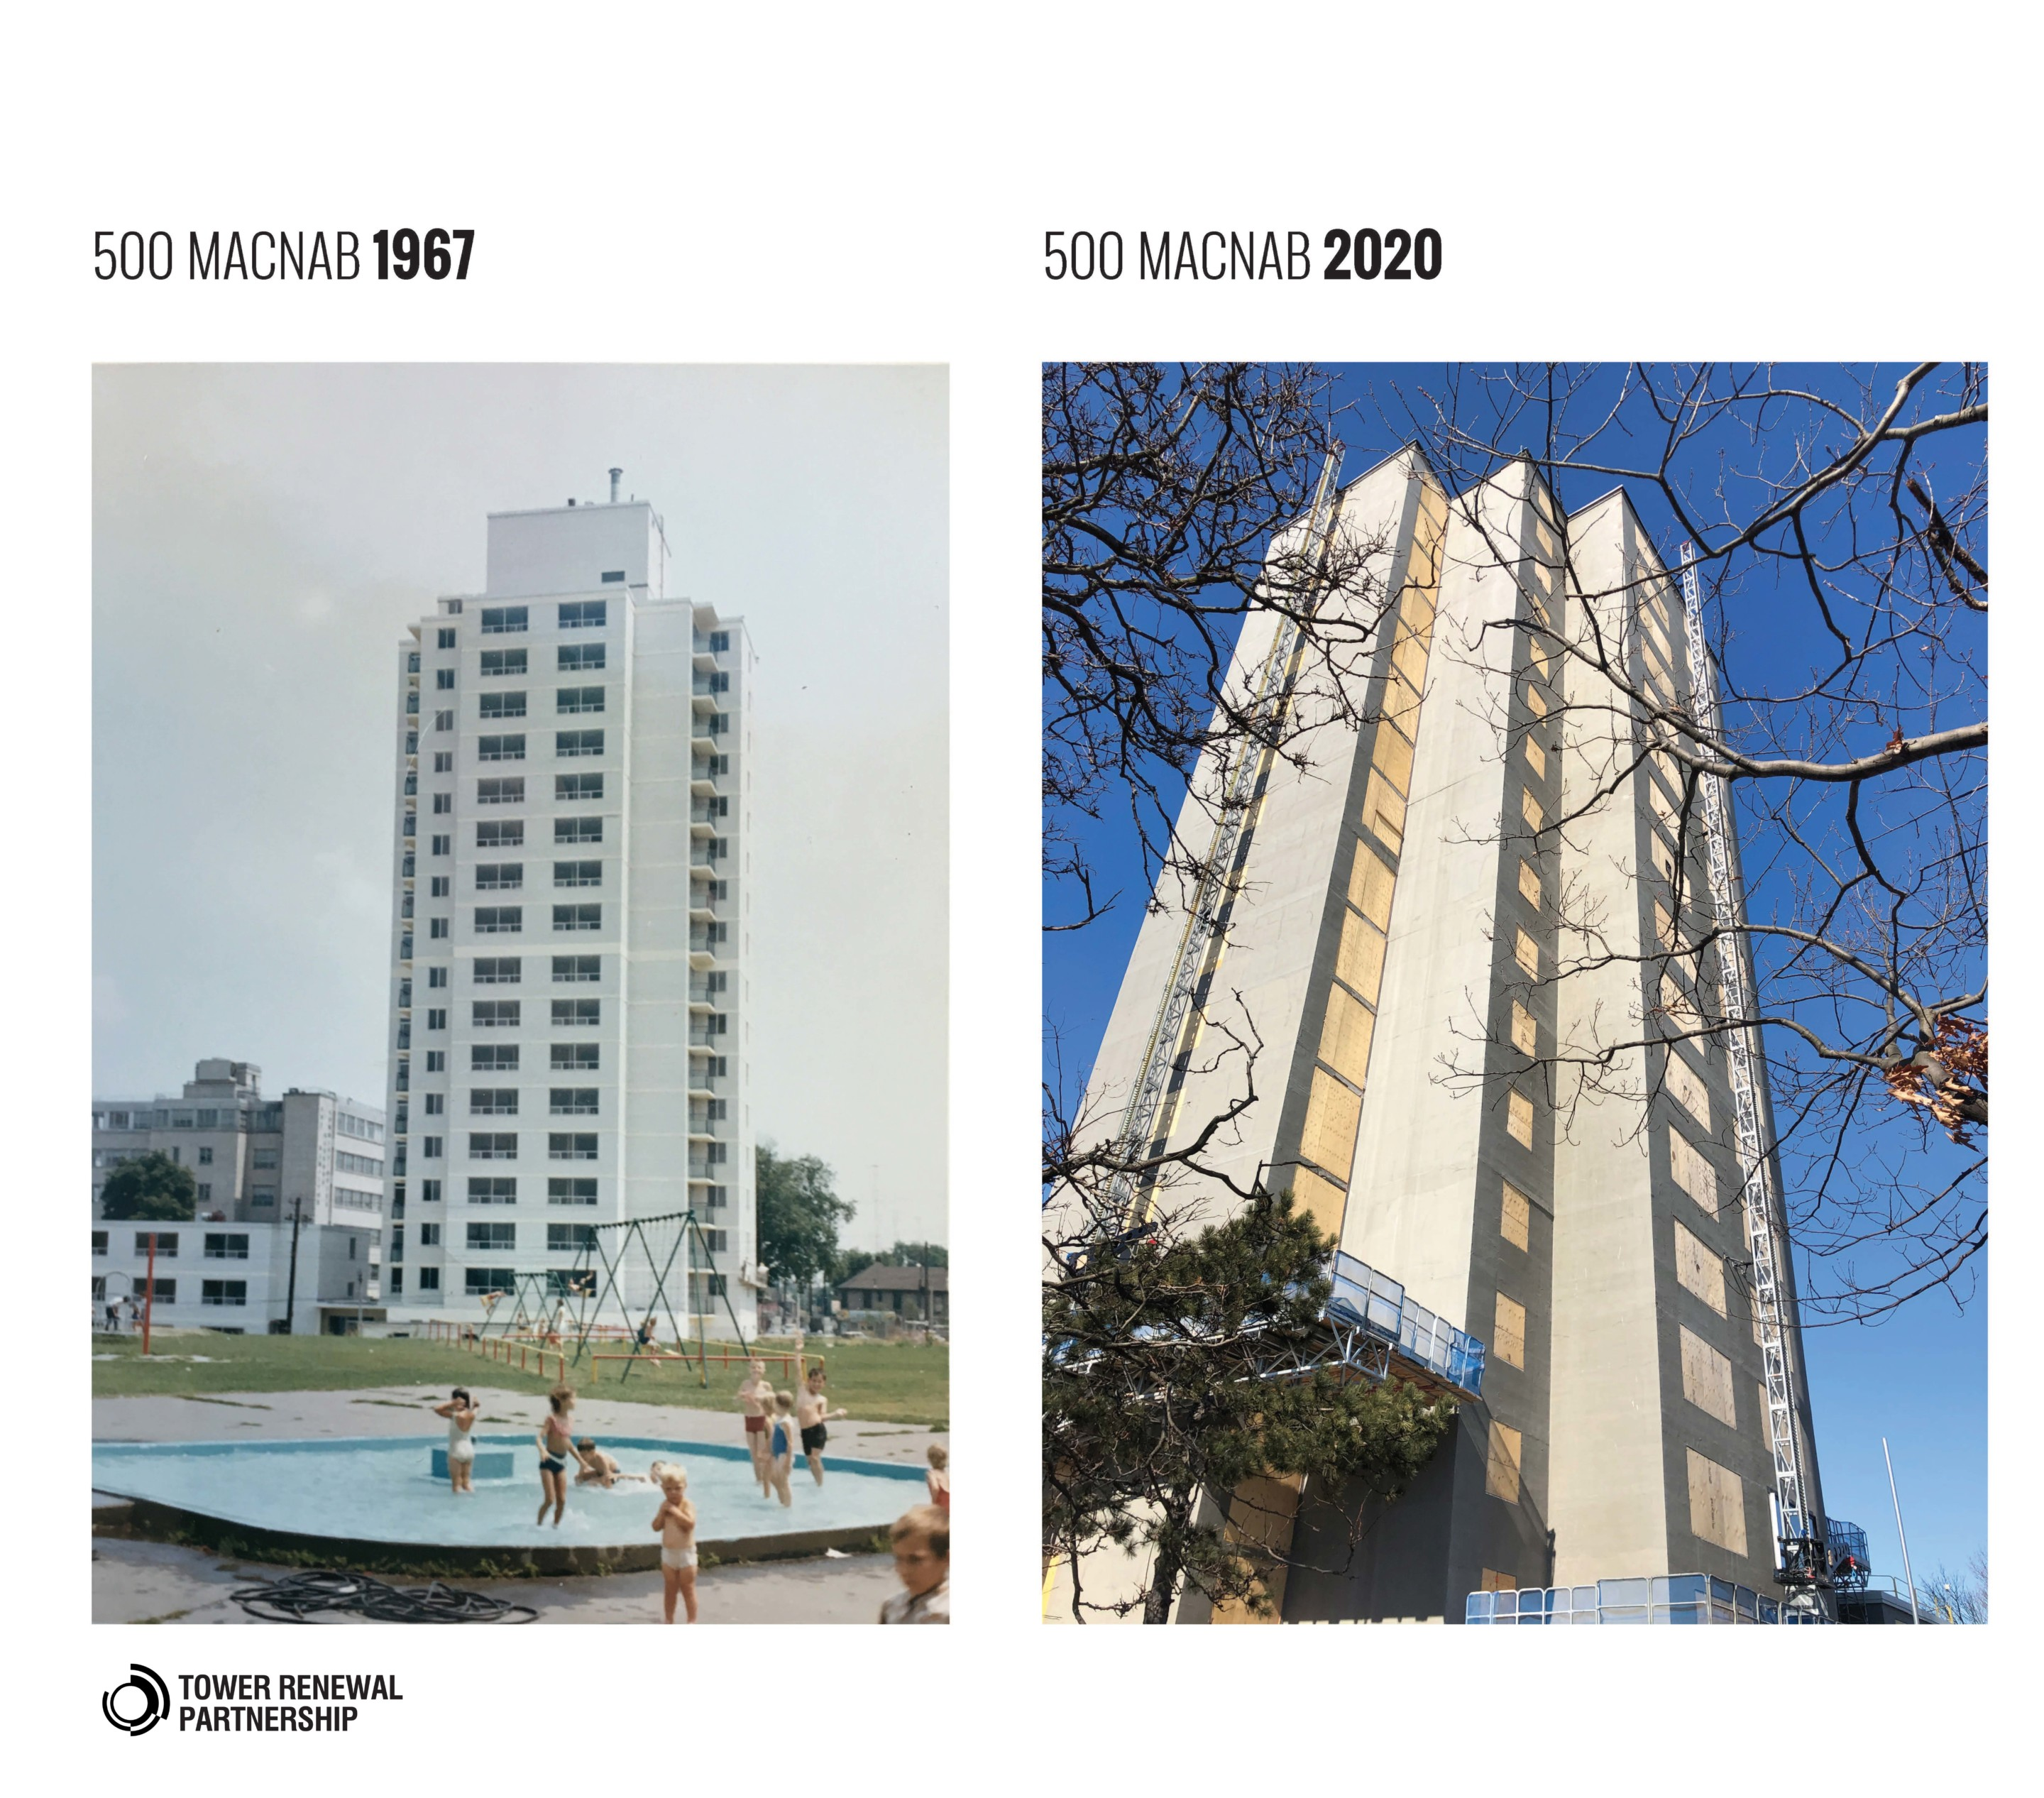 A two-part diagram showing a historic tower image and a renovated tower